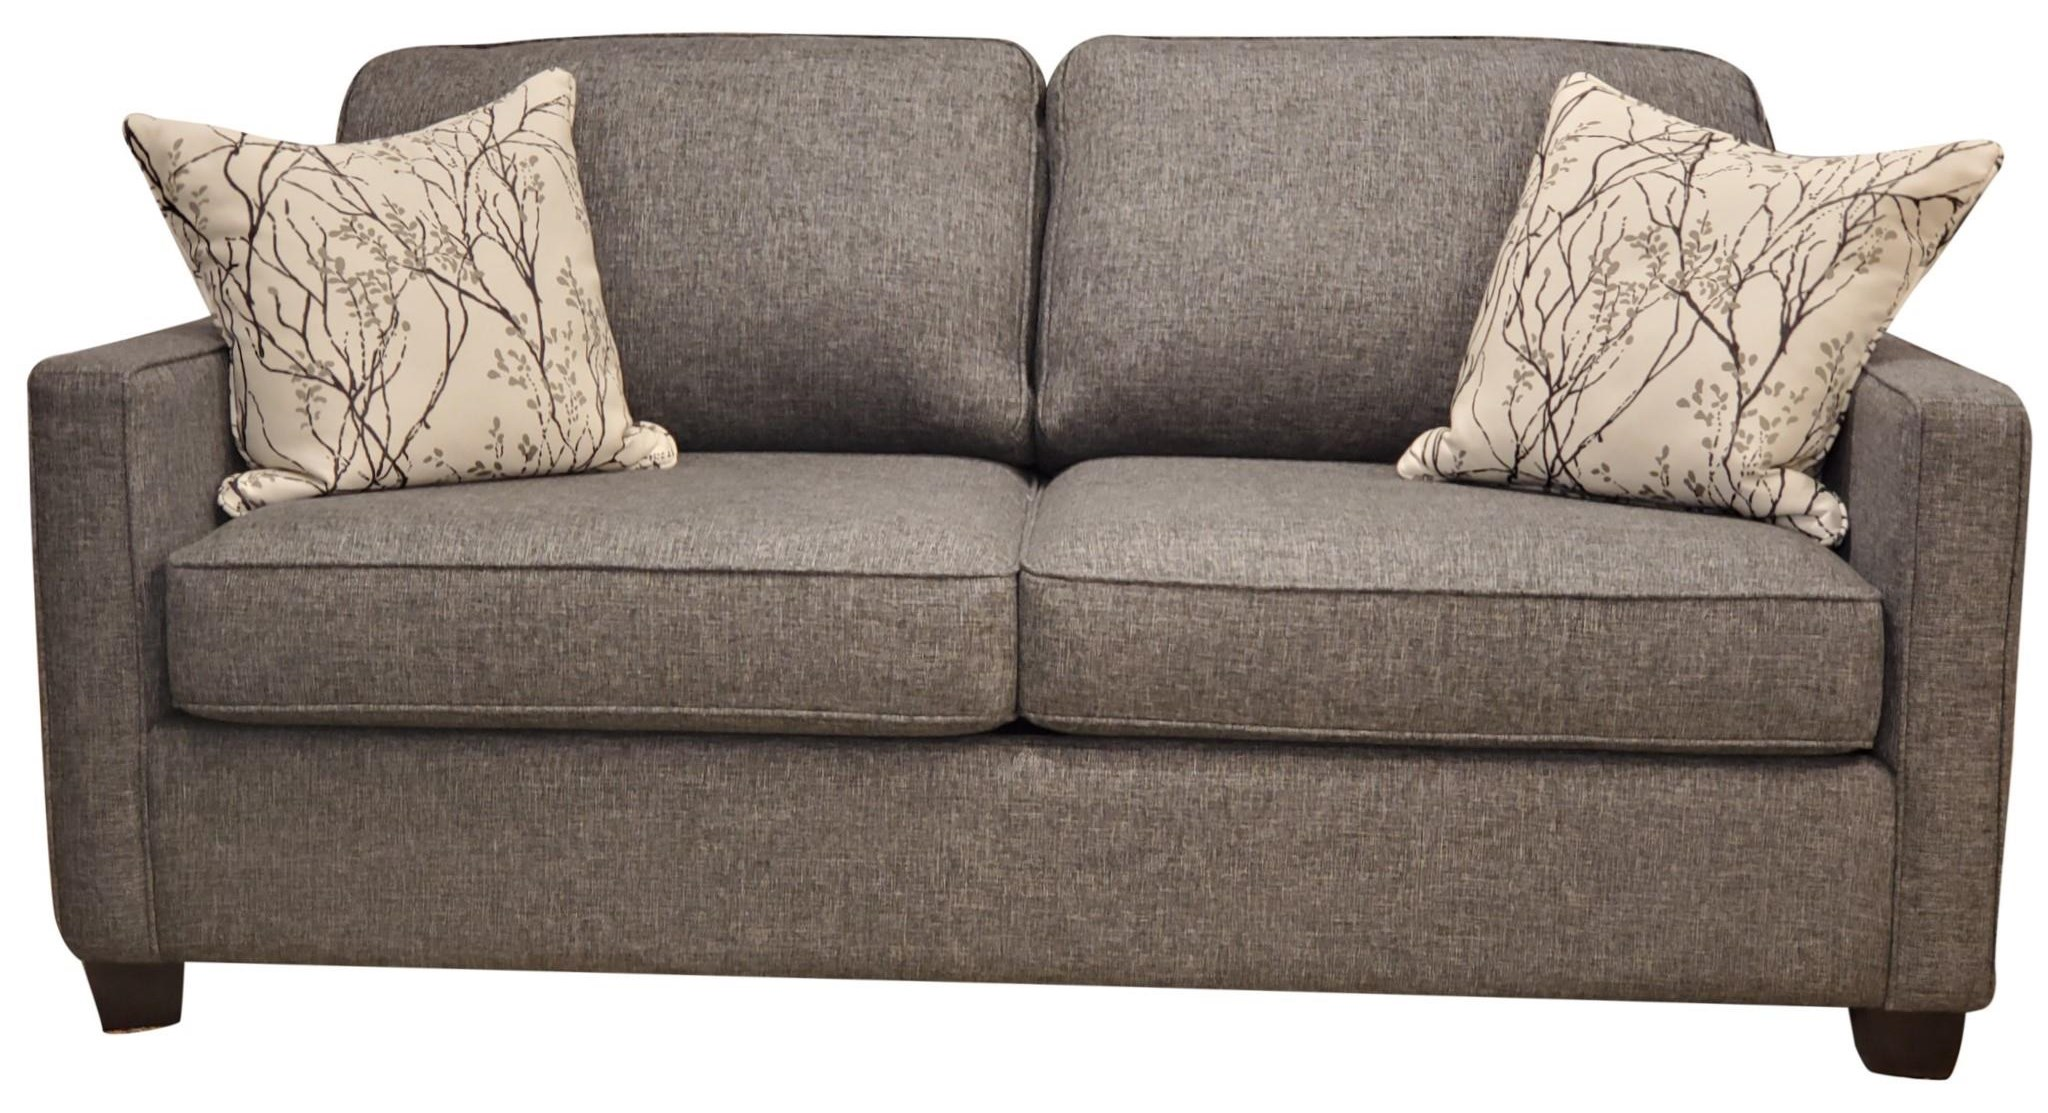 2855 Double Sleeper Sofa Bed by Decor-Rest at Upper Room Home Furnishings